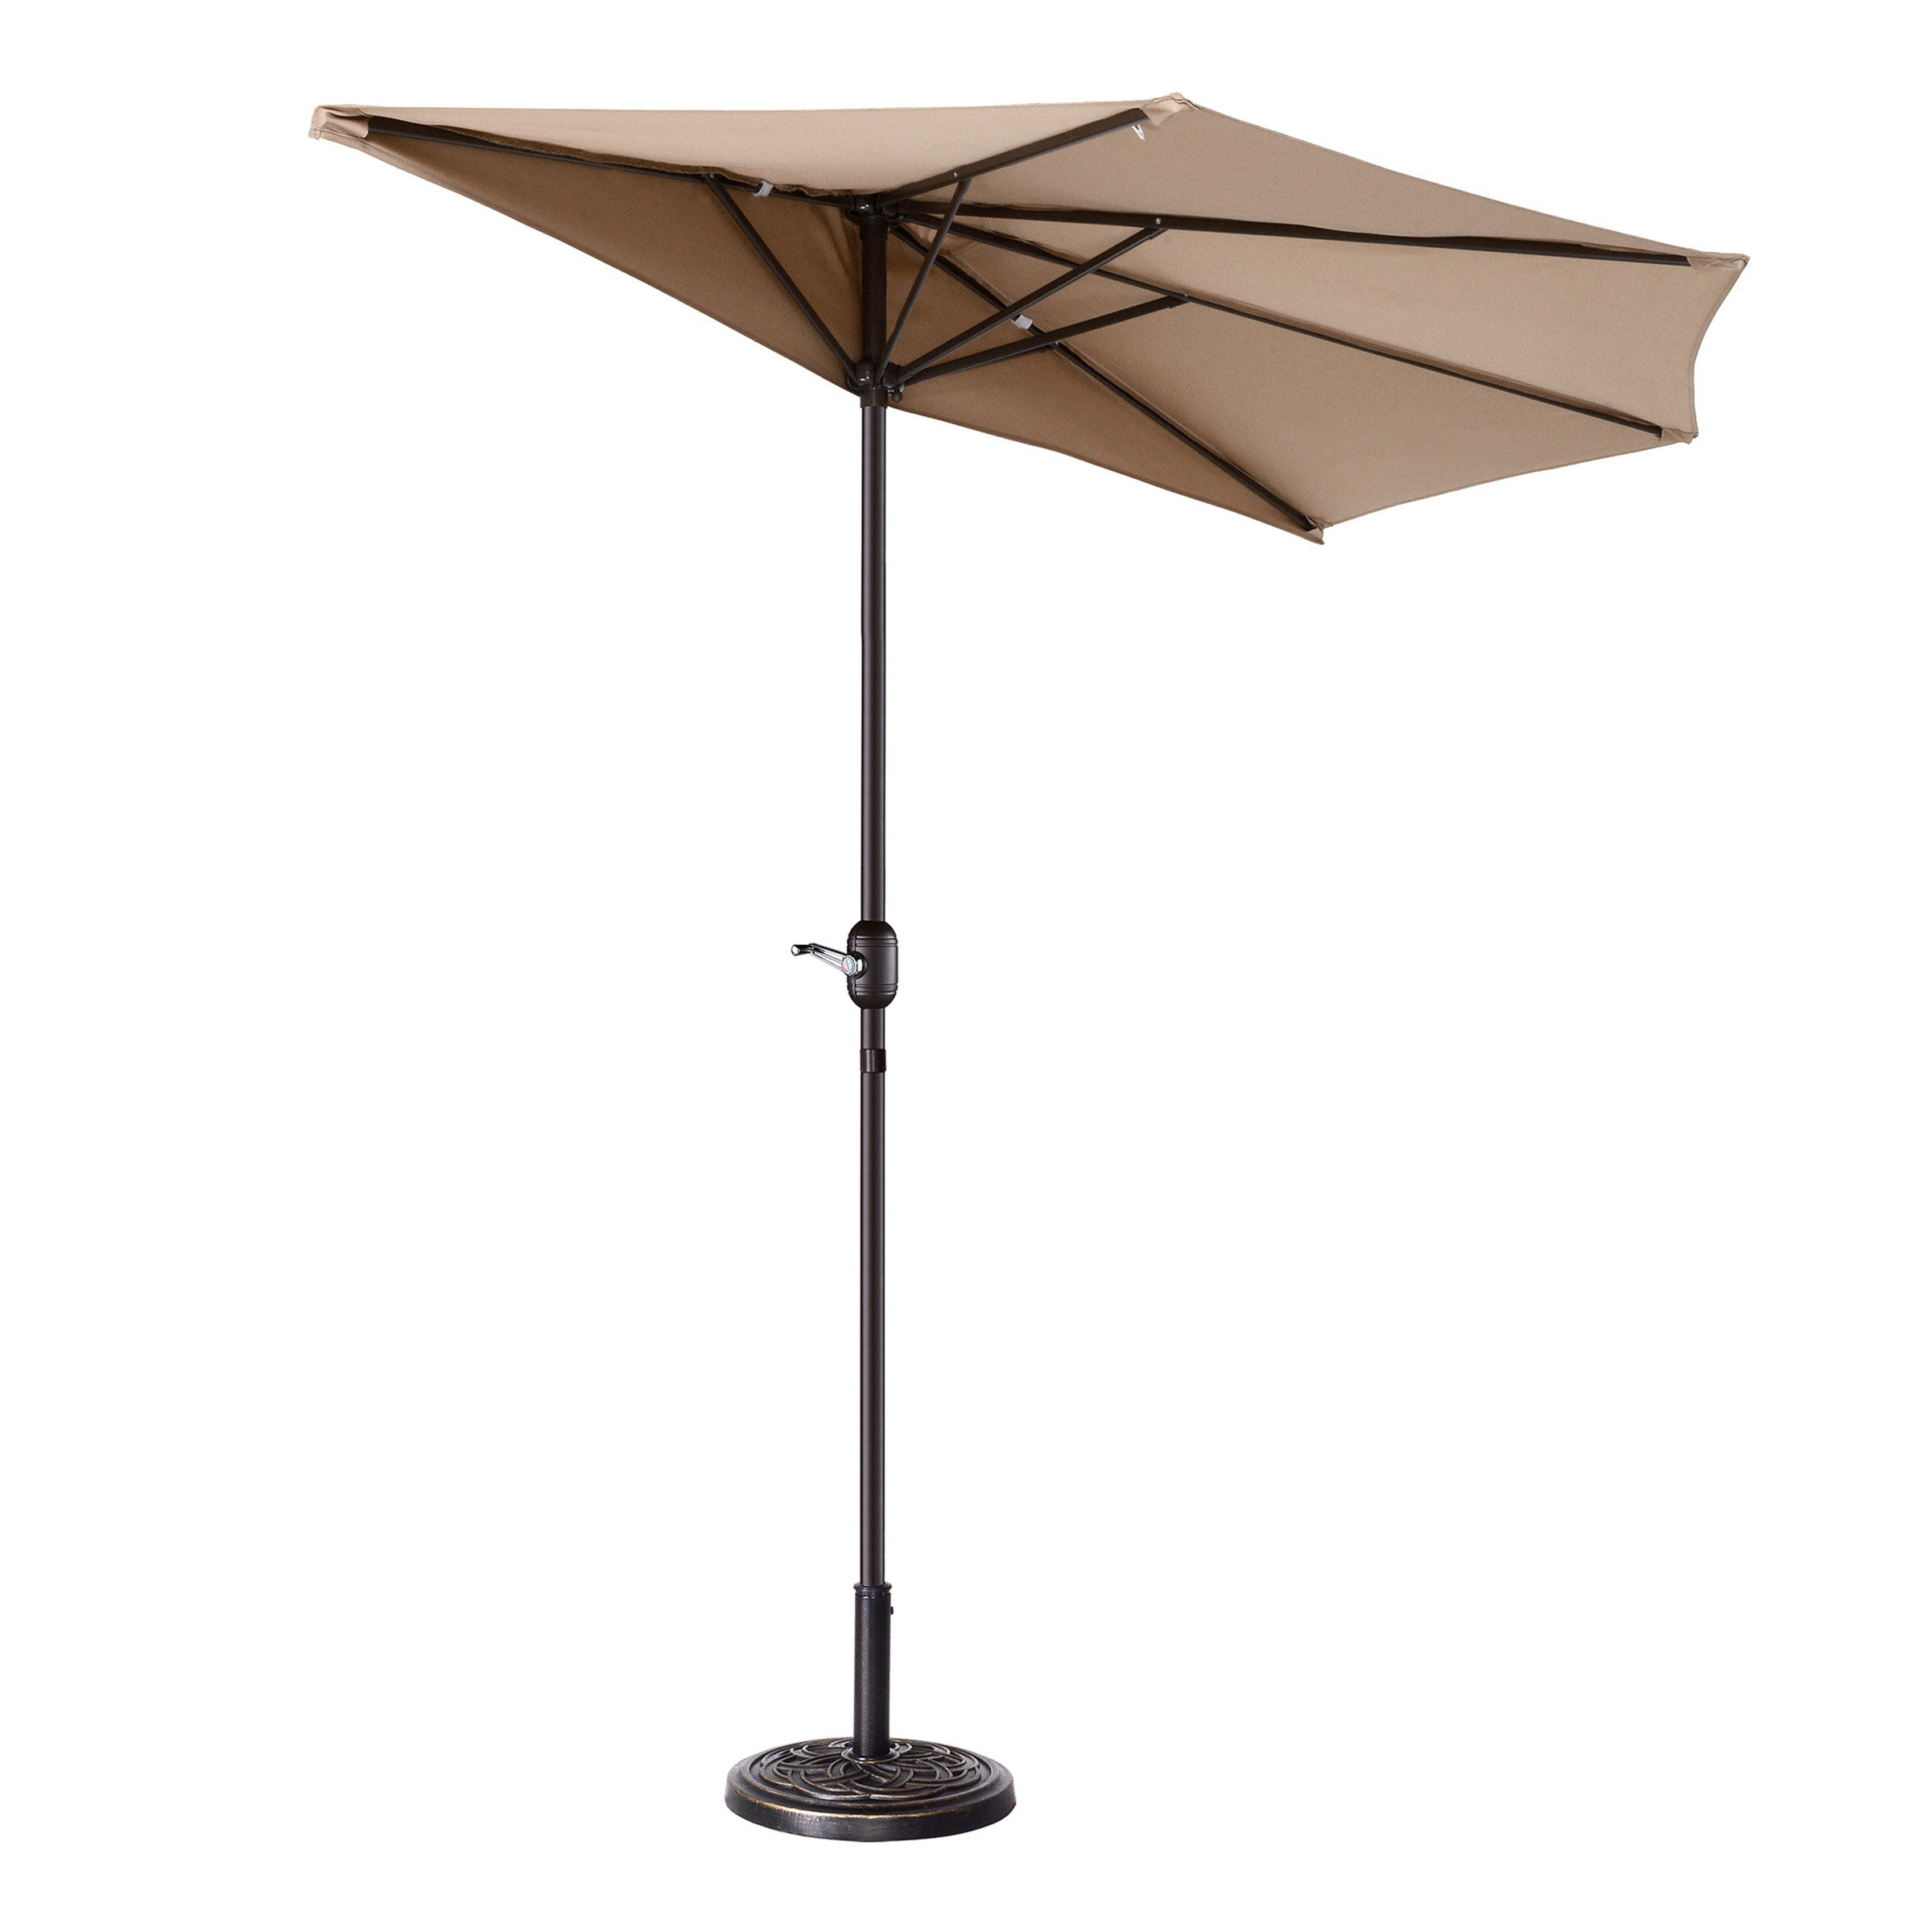 Dade City North Half Market Umbrellas In 2020 Colburn Half 9' Market Umbrella (View 7 of 20)